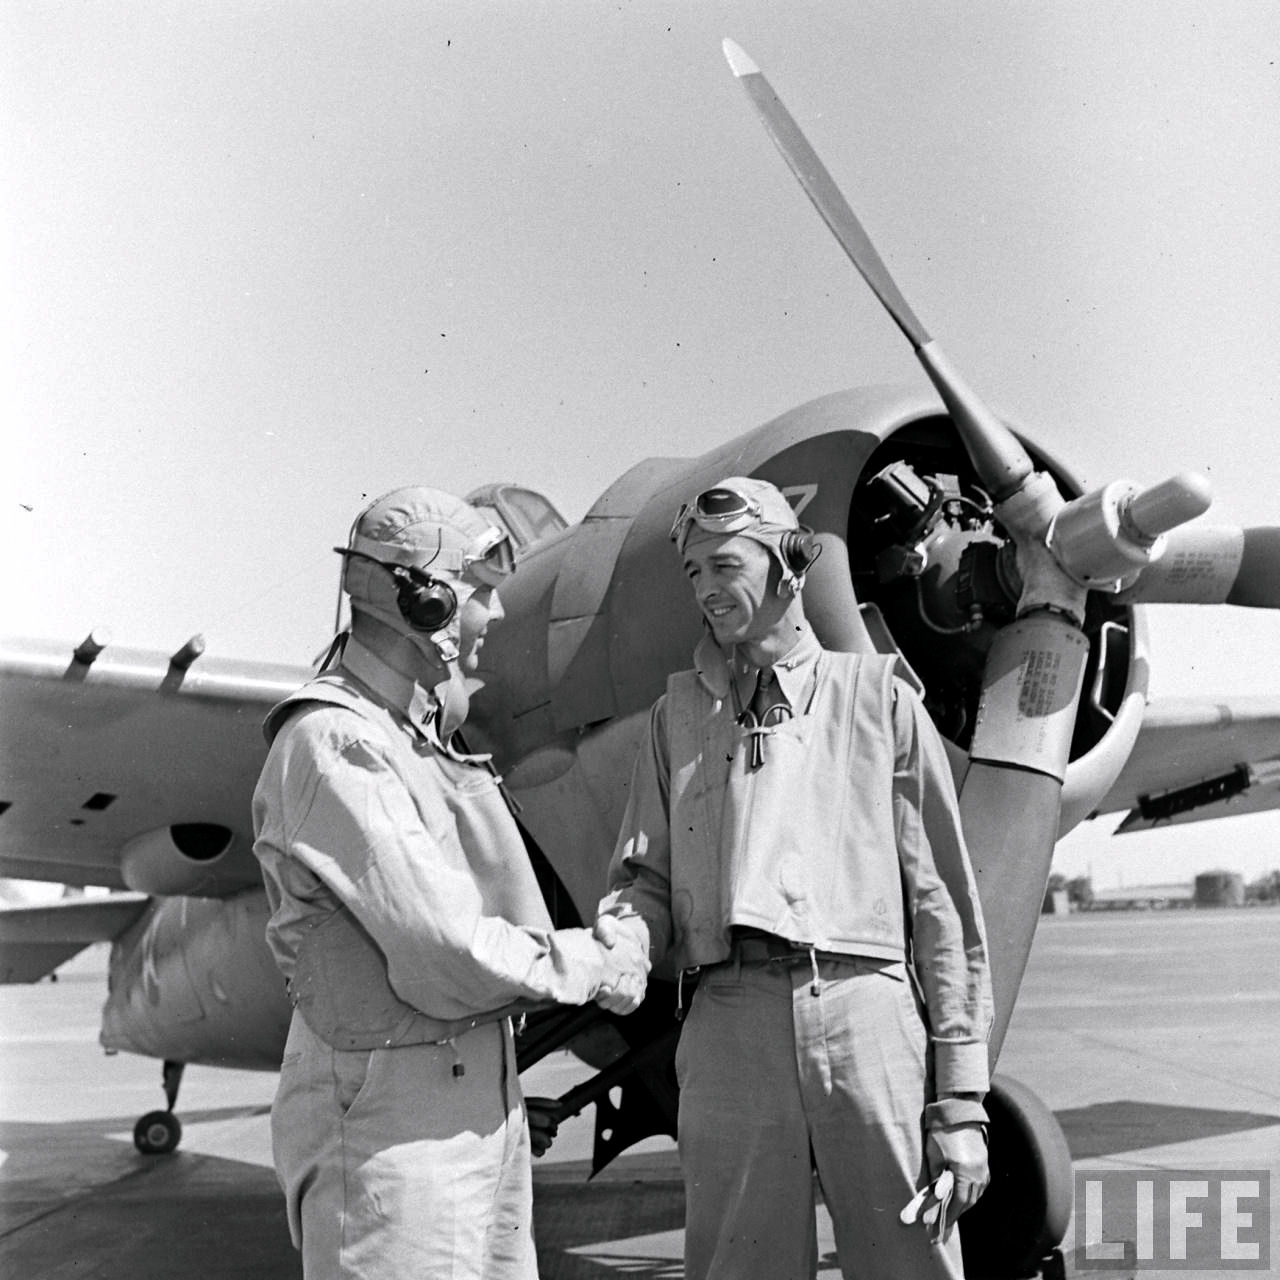 Aircrew Lt Edward 'Butch' O'Hare and Lt Cmd Thach VF 3 April 1942 02